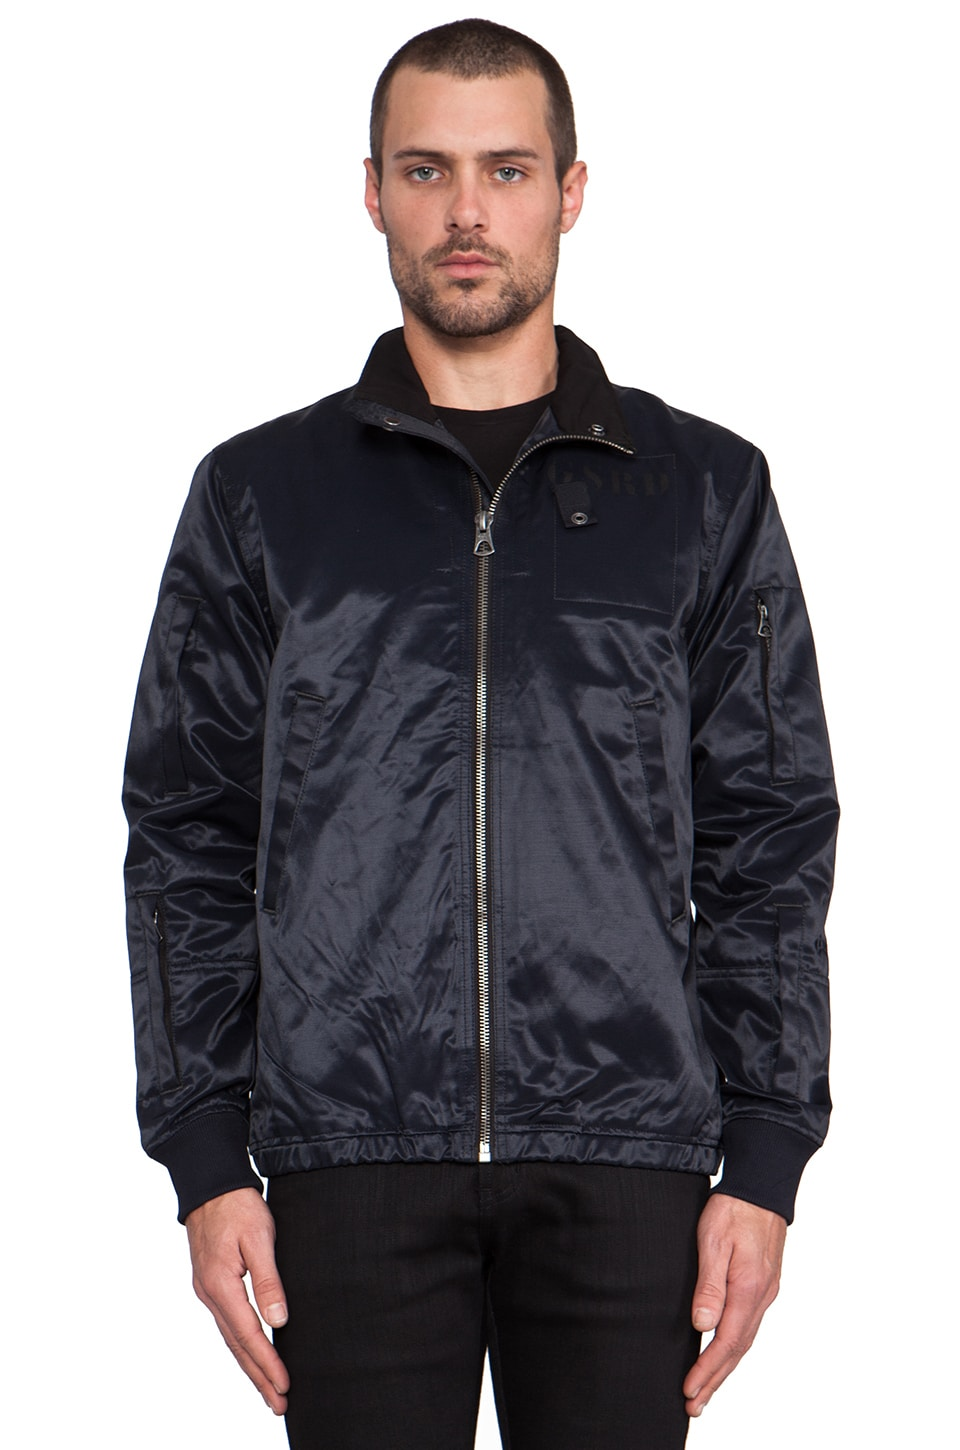 G-Star Martens Bomber in Mazarine Blue